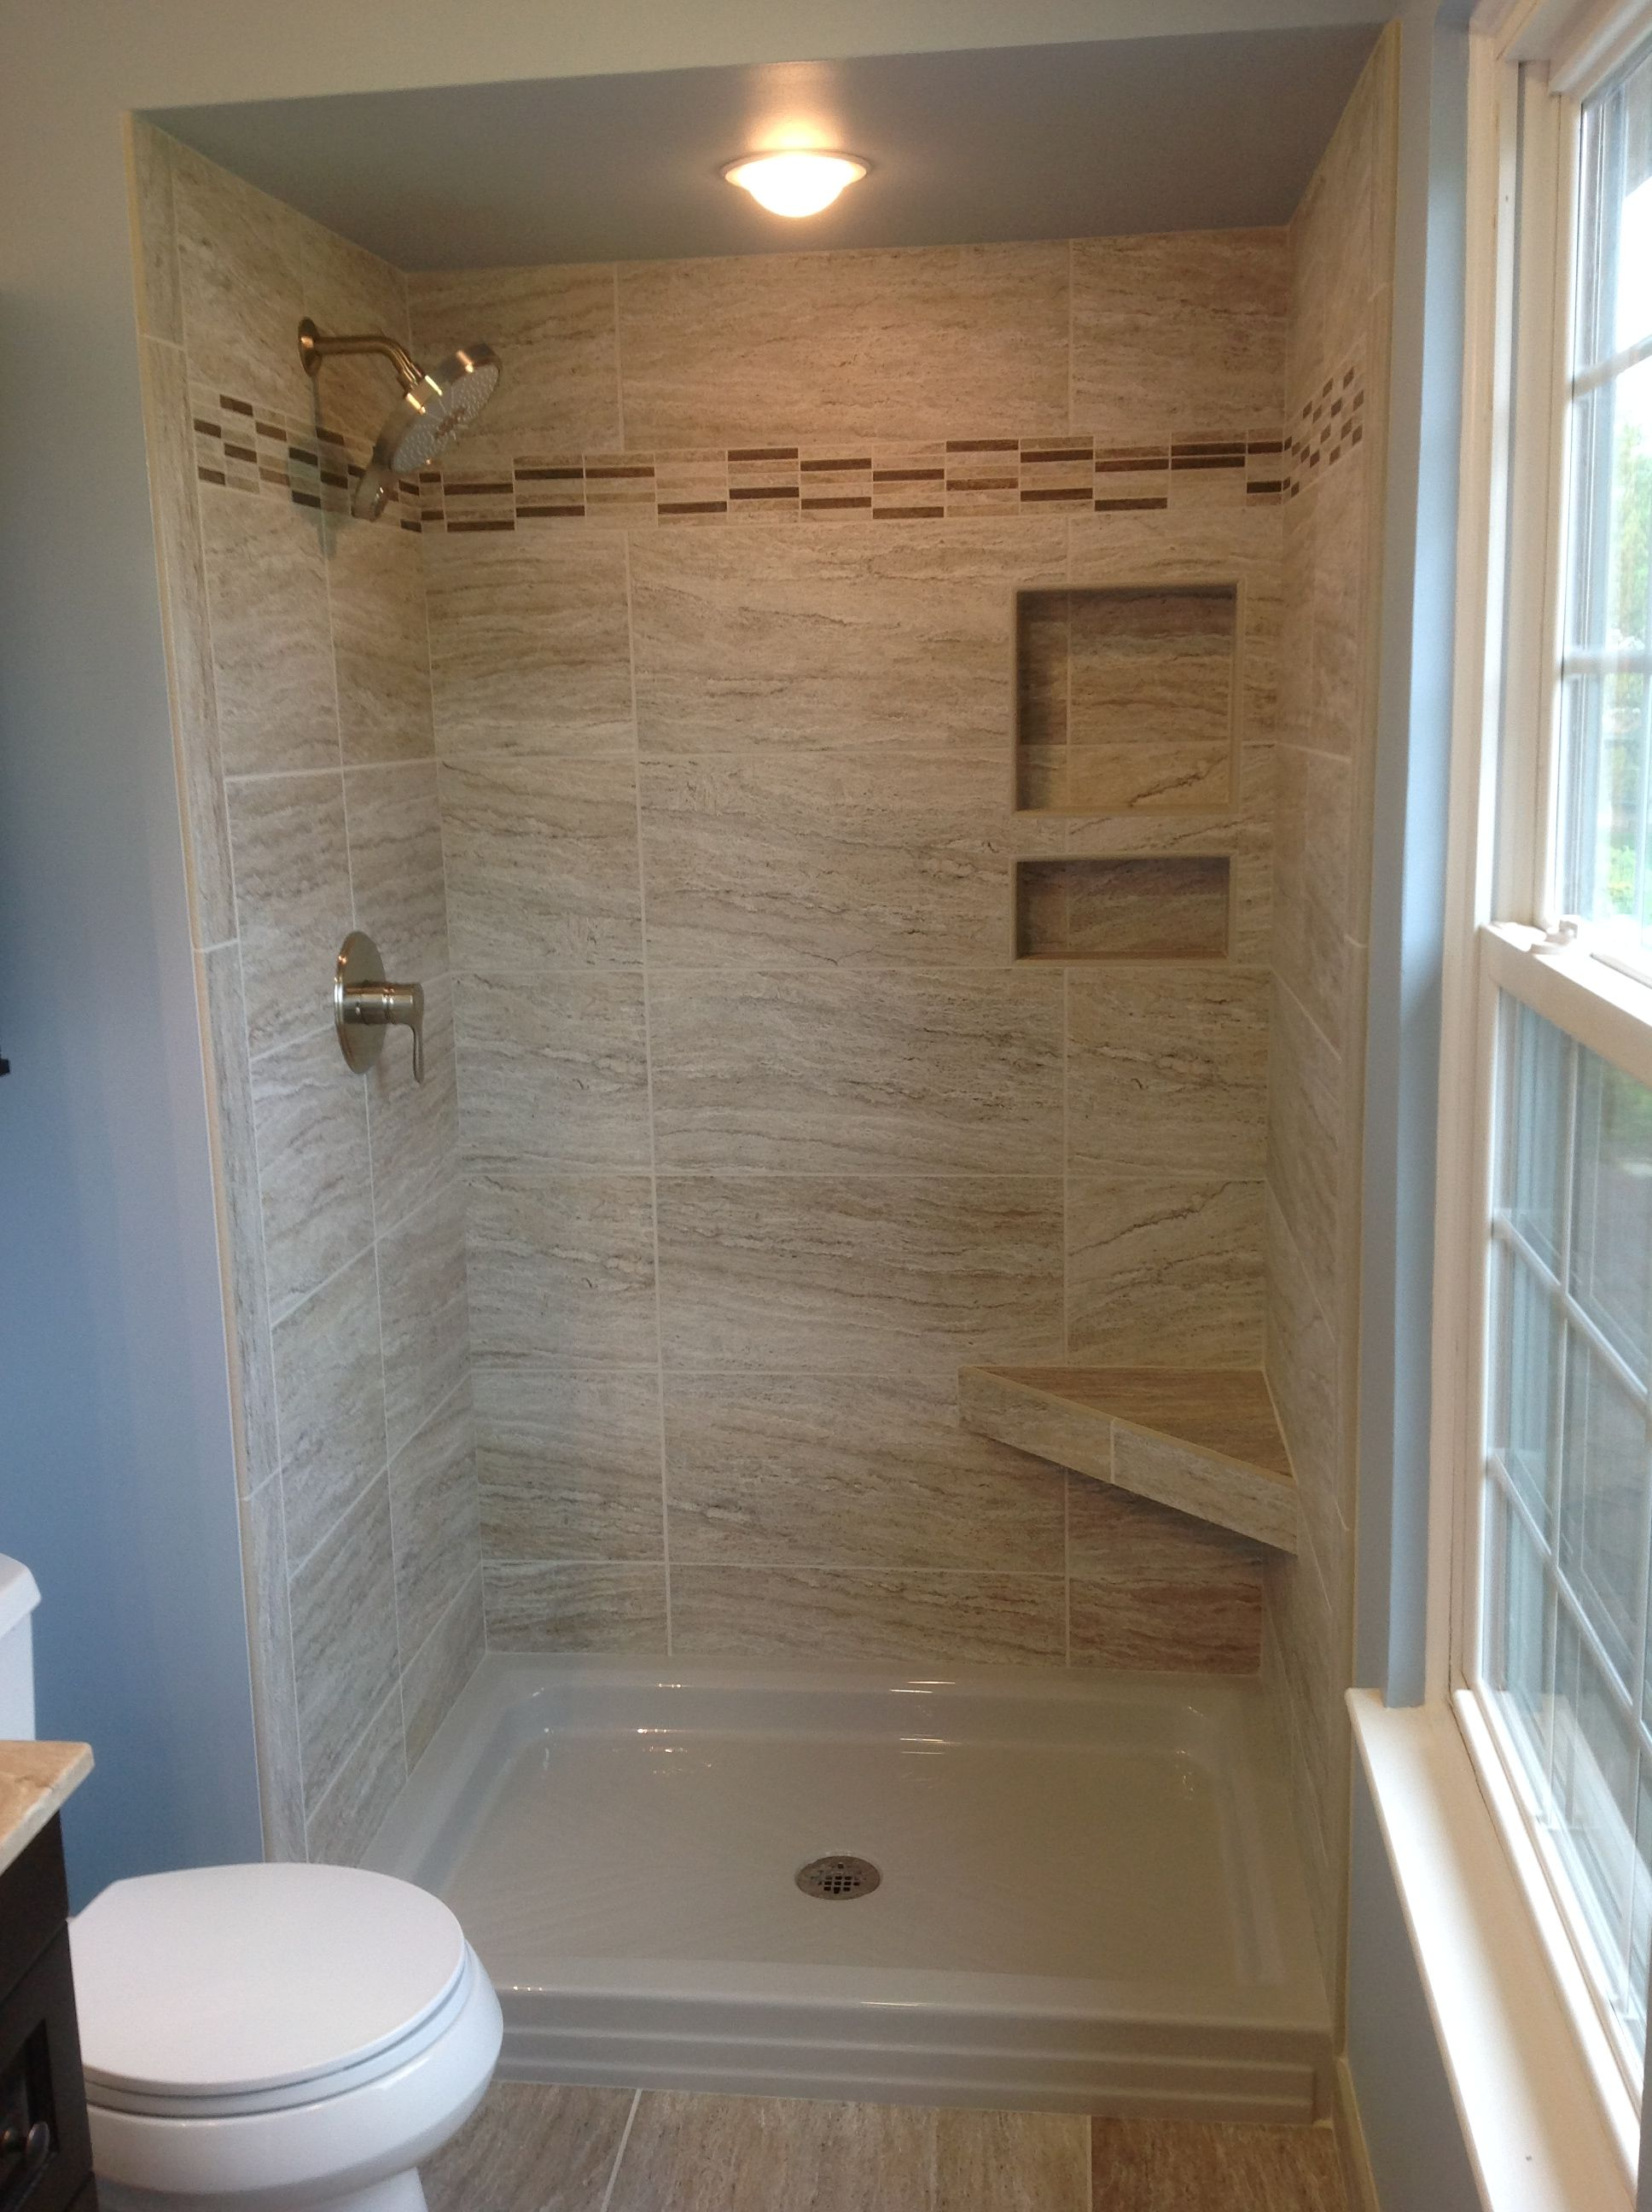 12x24 Tile Shower Marazzi Silk Elegant 12x24